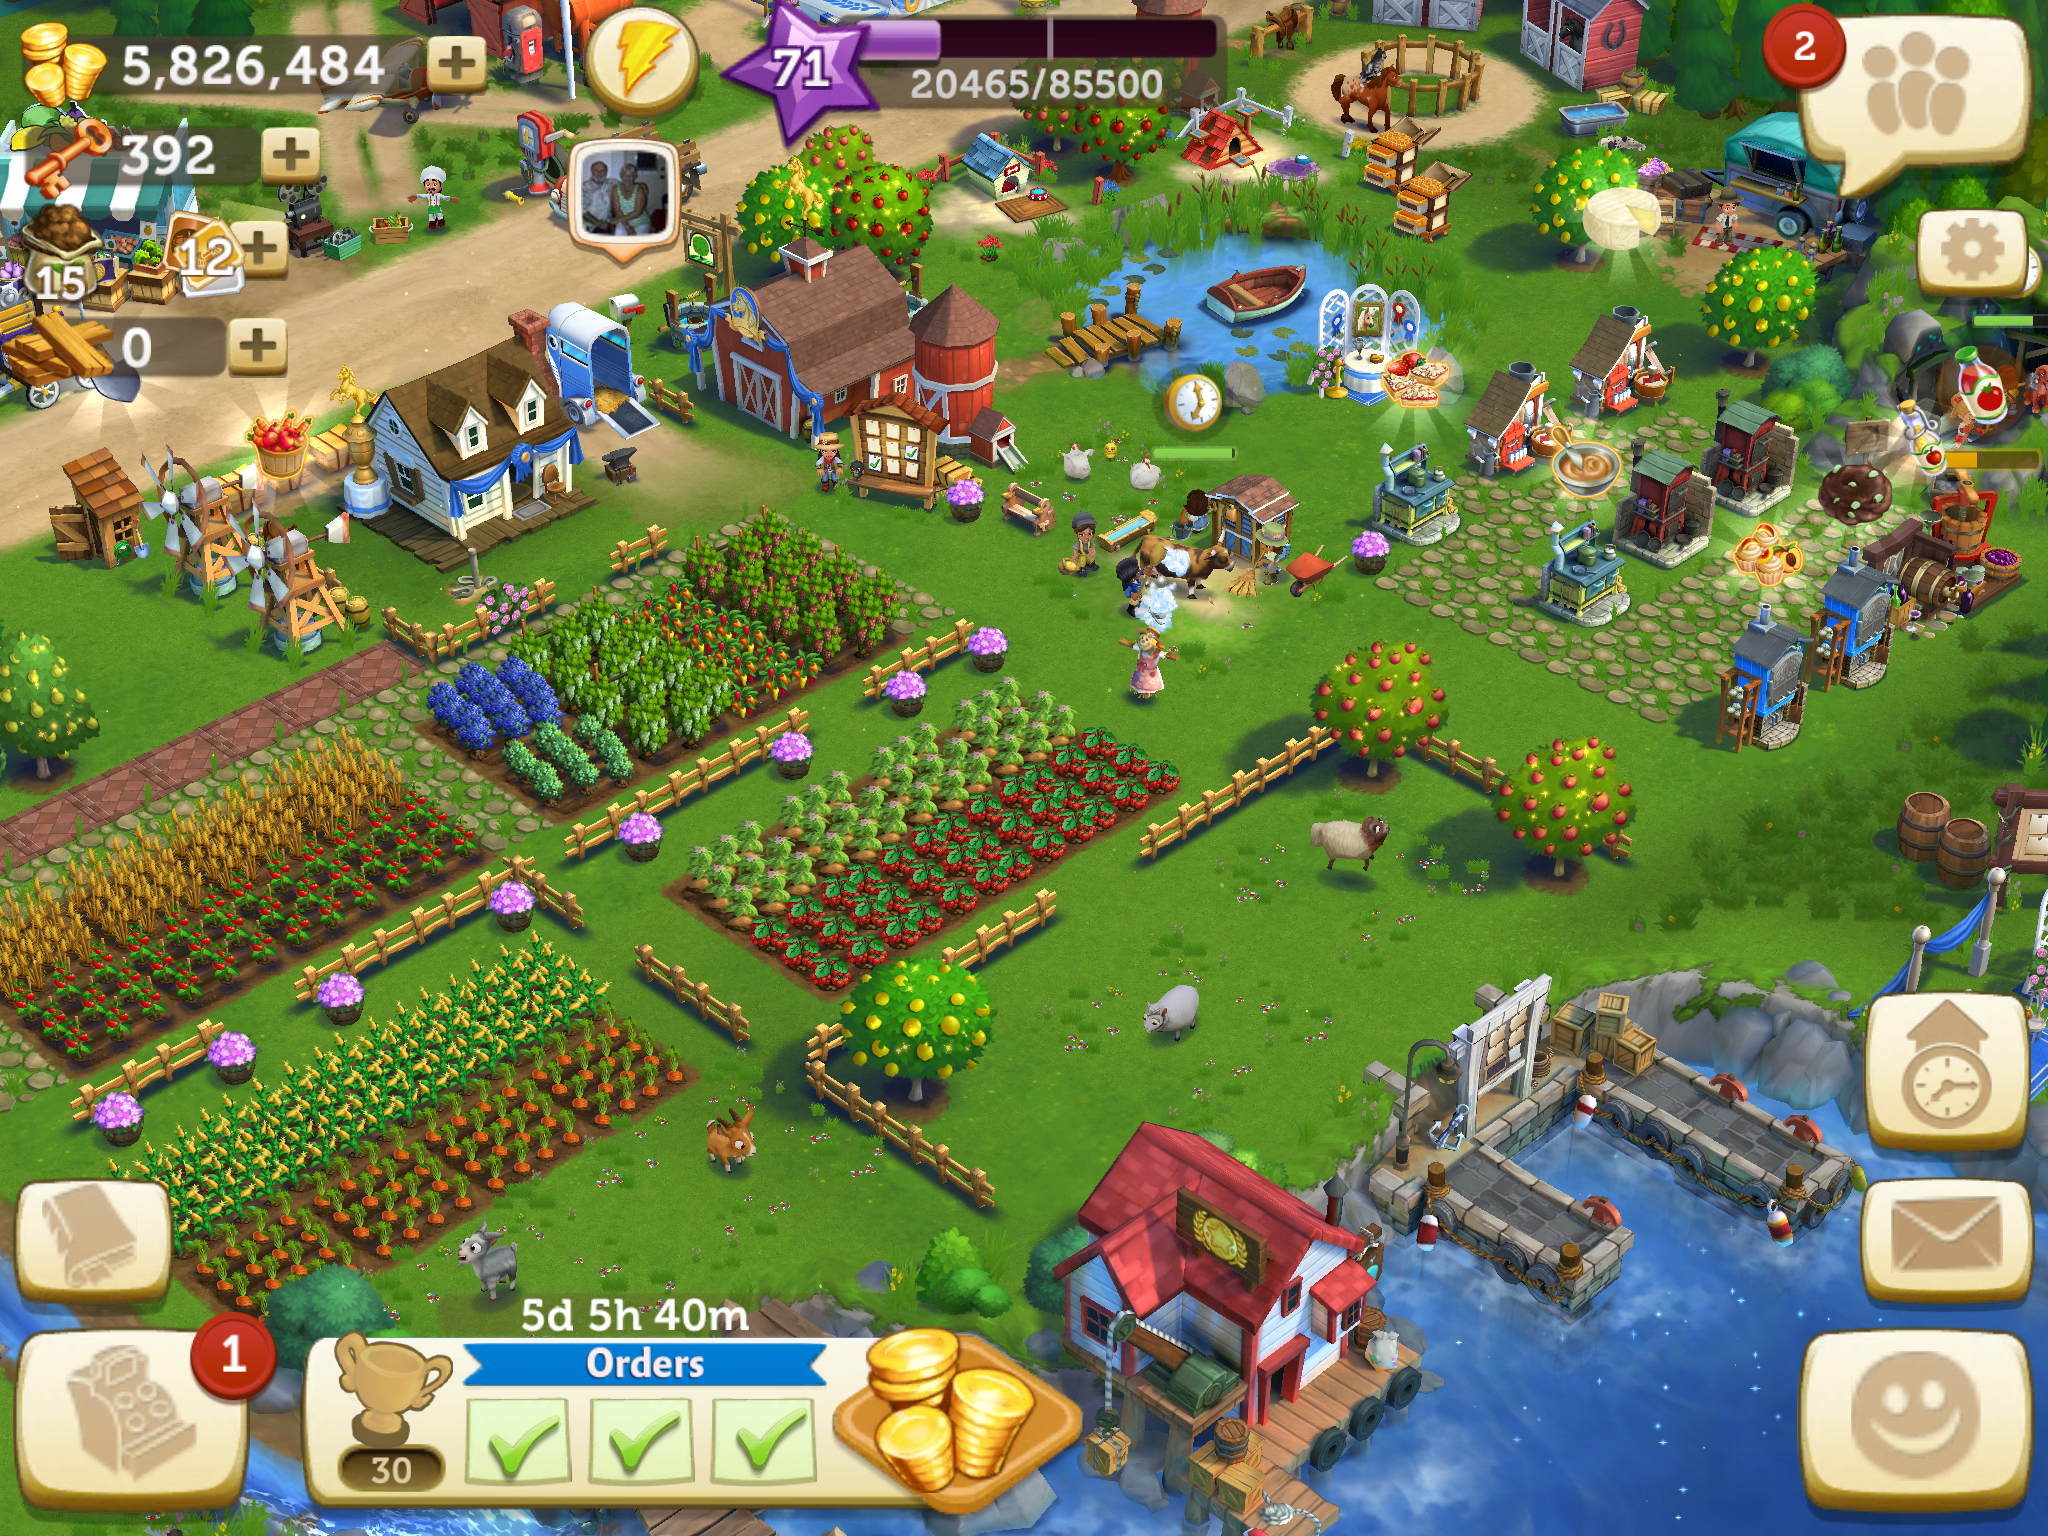 How to succeed with leaderboard events farmville 2 for Farmville 2 decorations